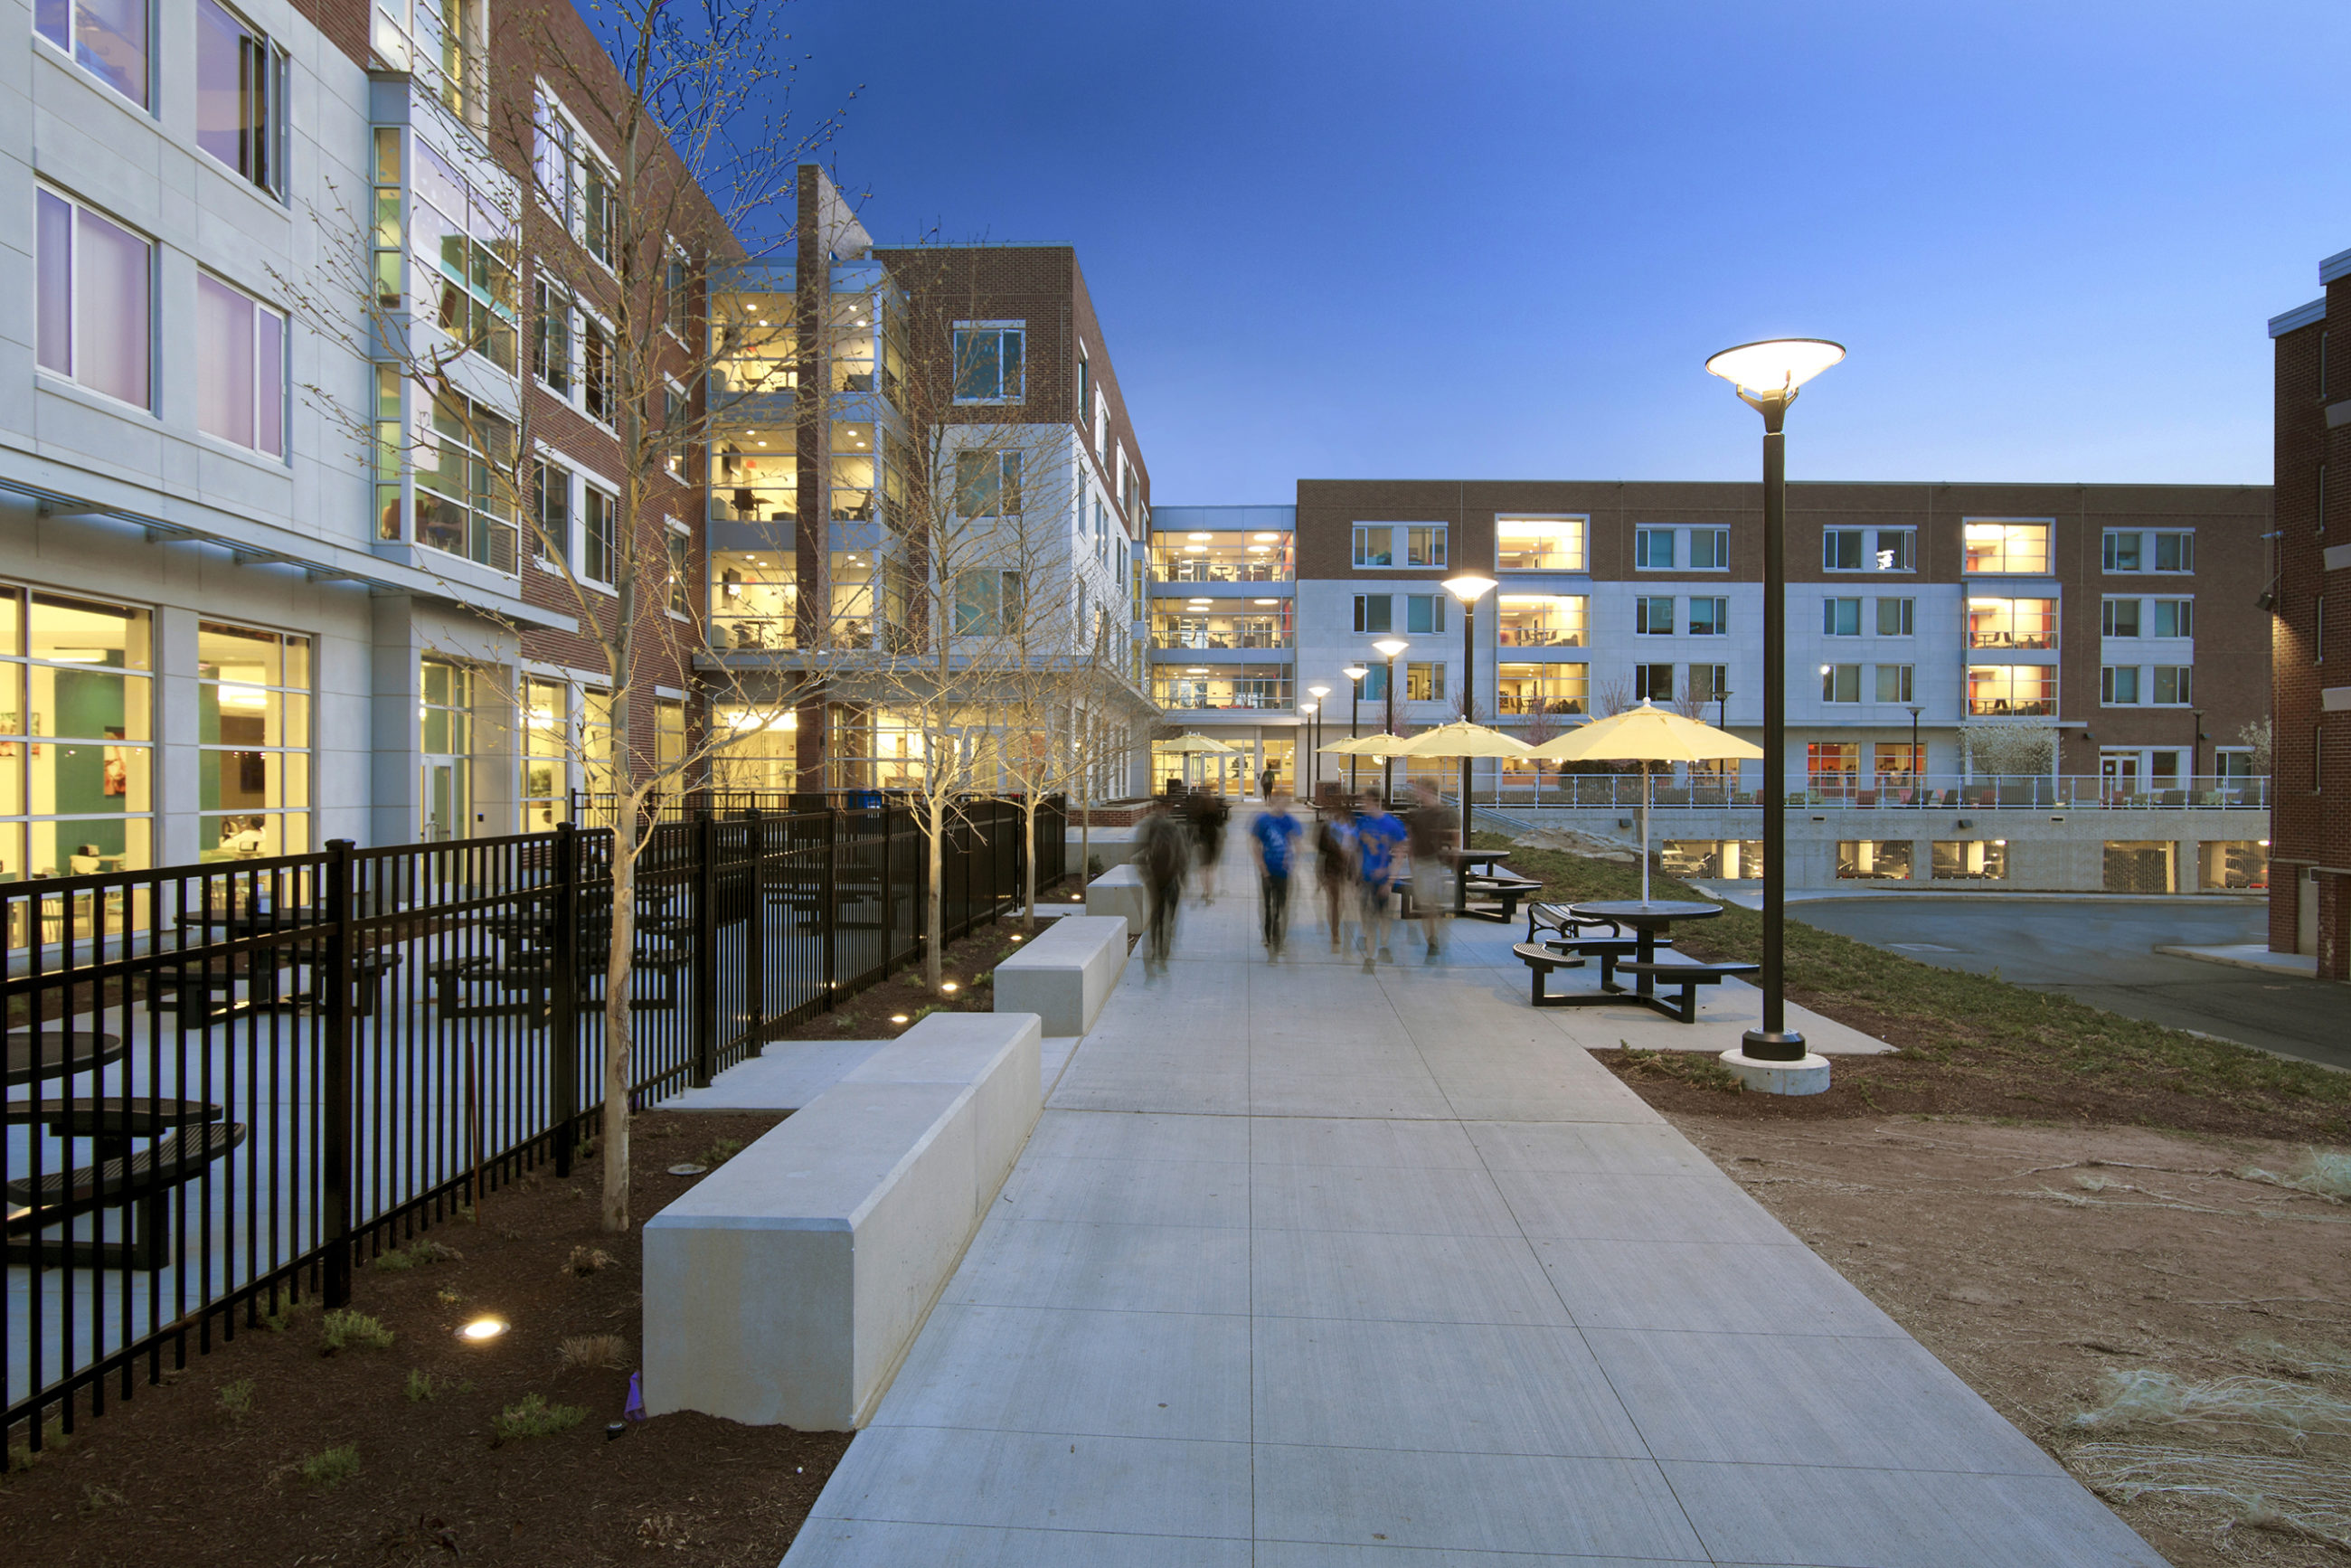 Health and Wellness Services at the University of New Haven